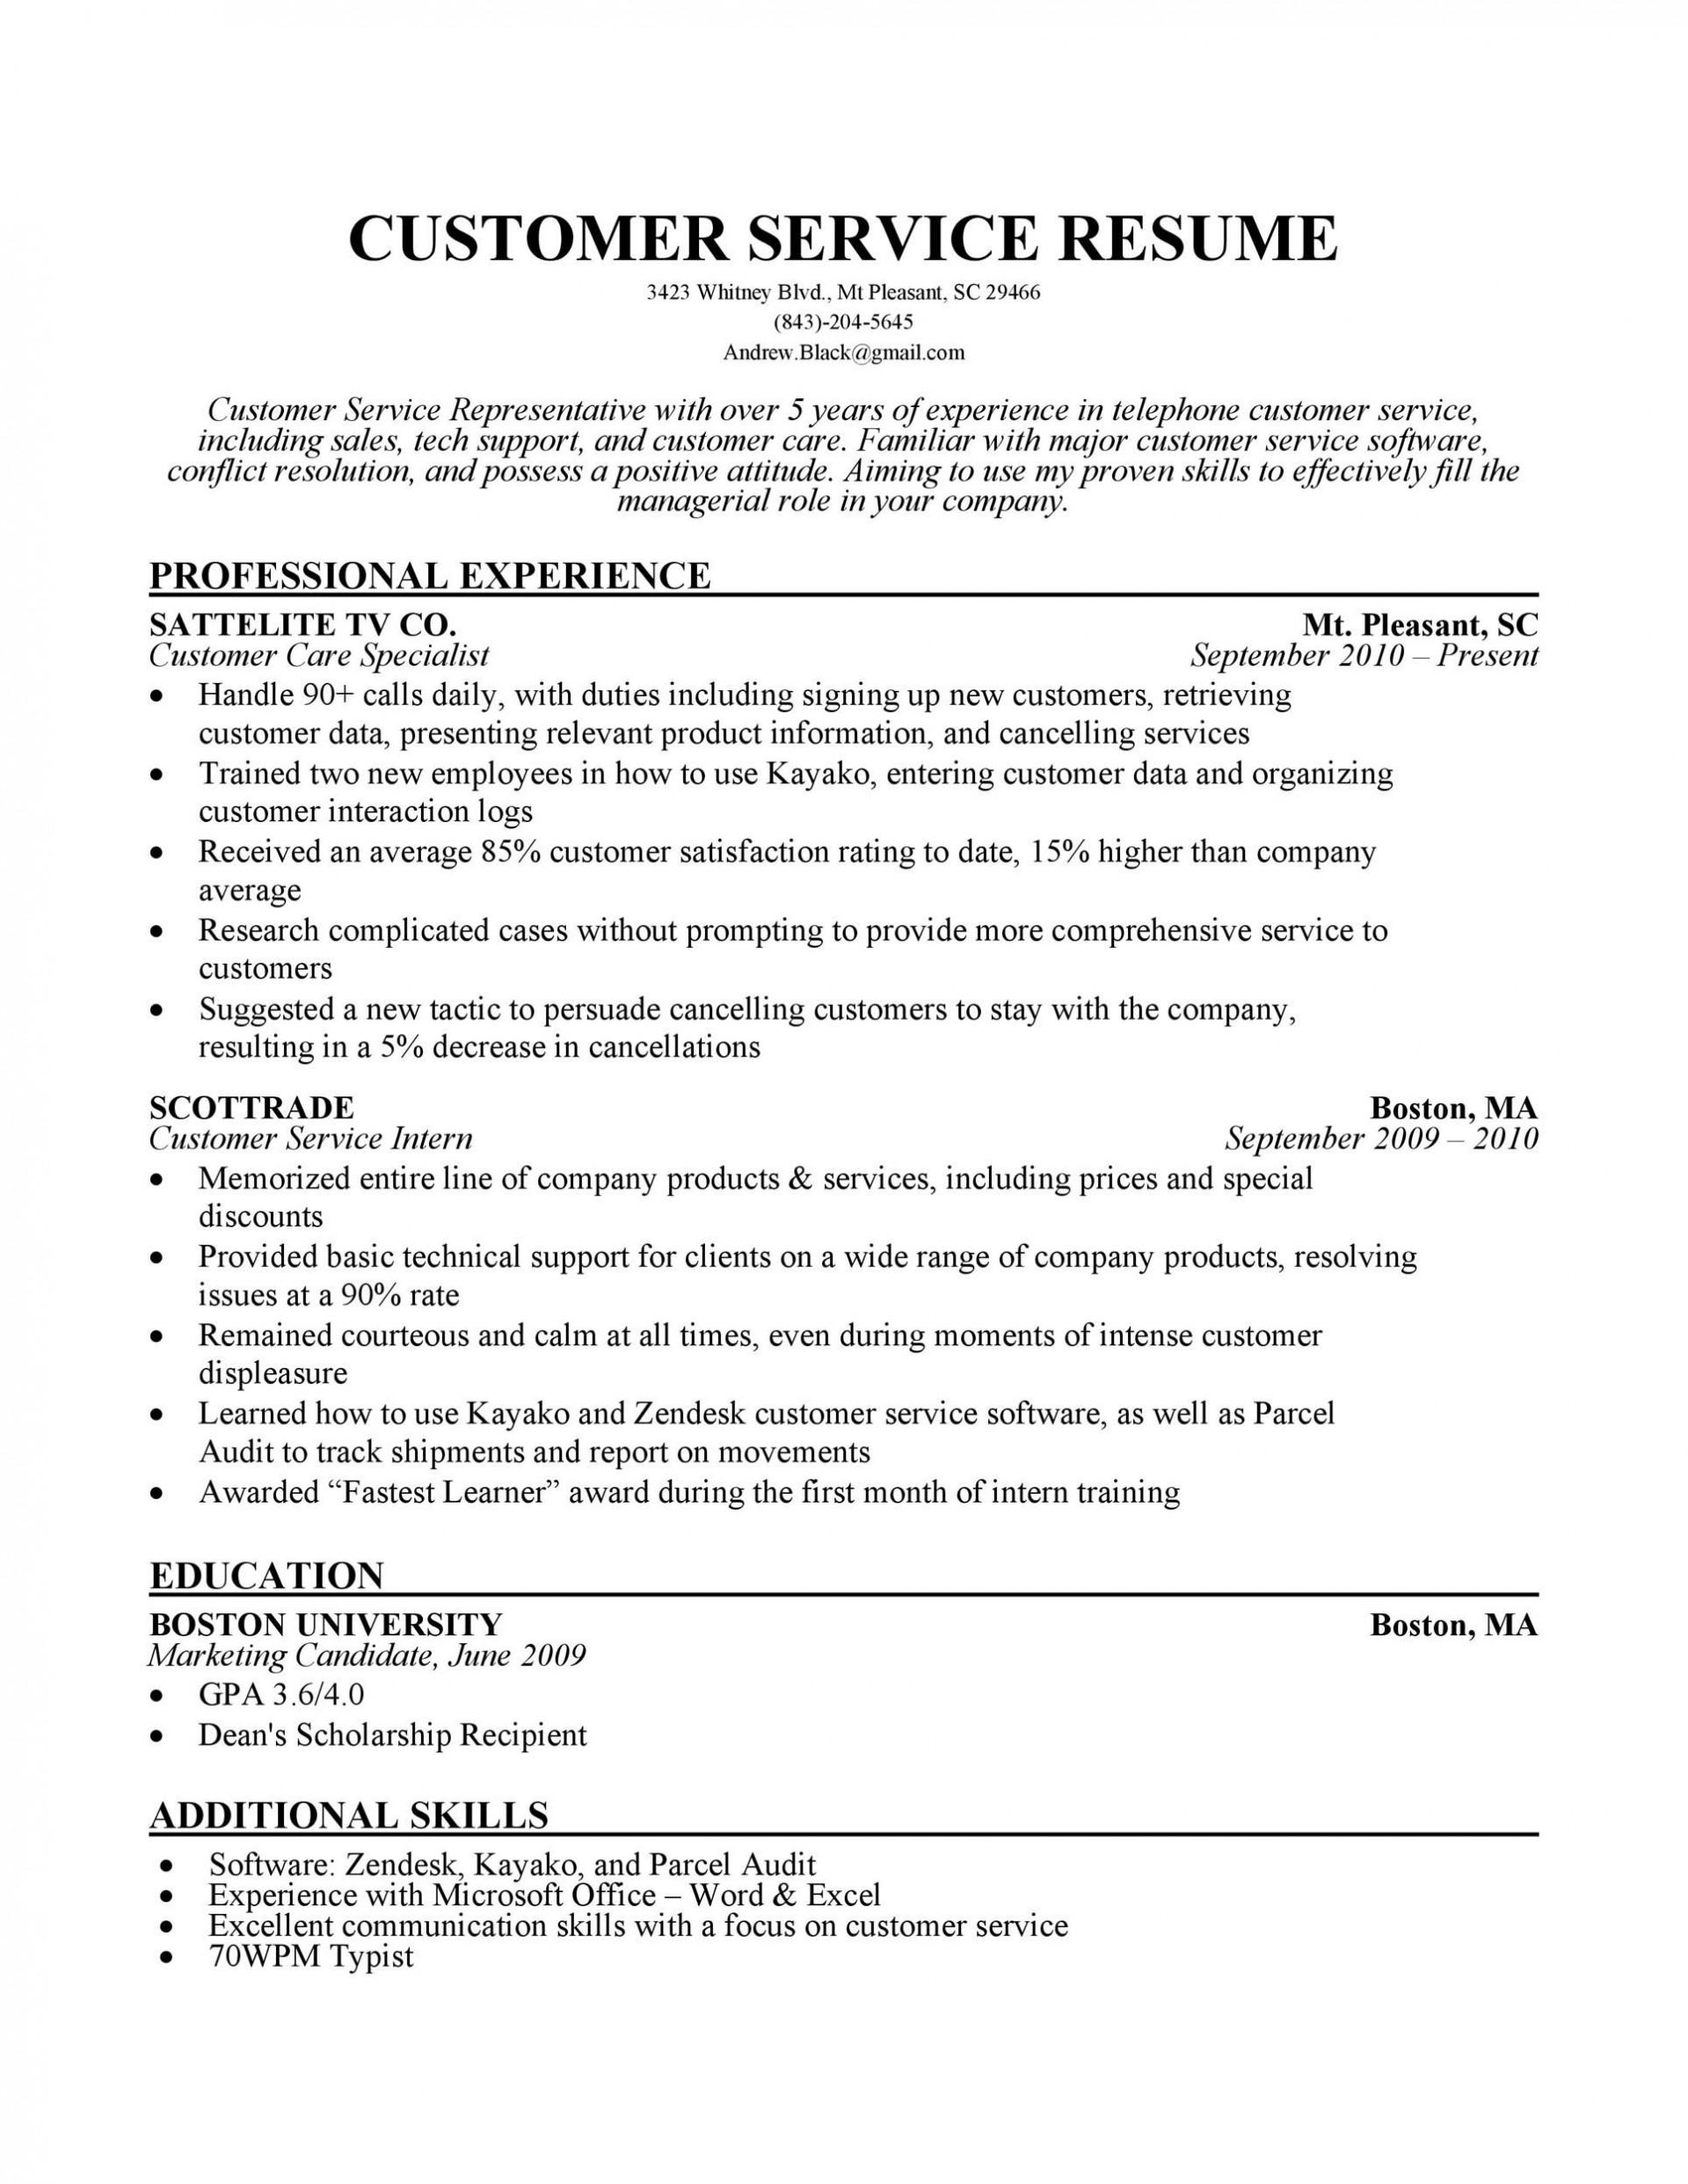 007 Impressive Customer Service Resume Template Idea  Cv1920